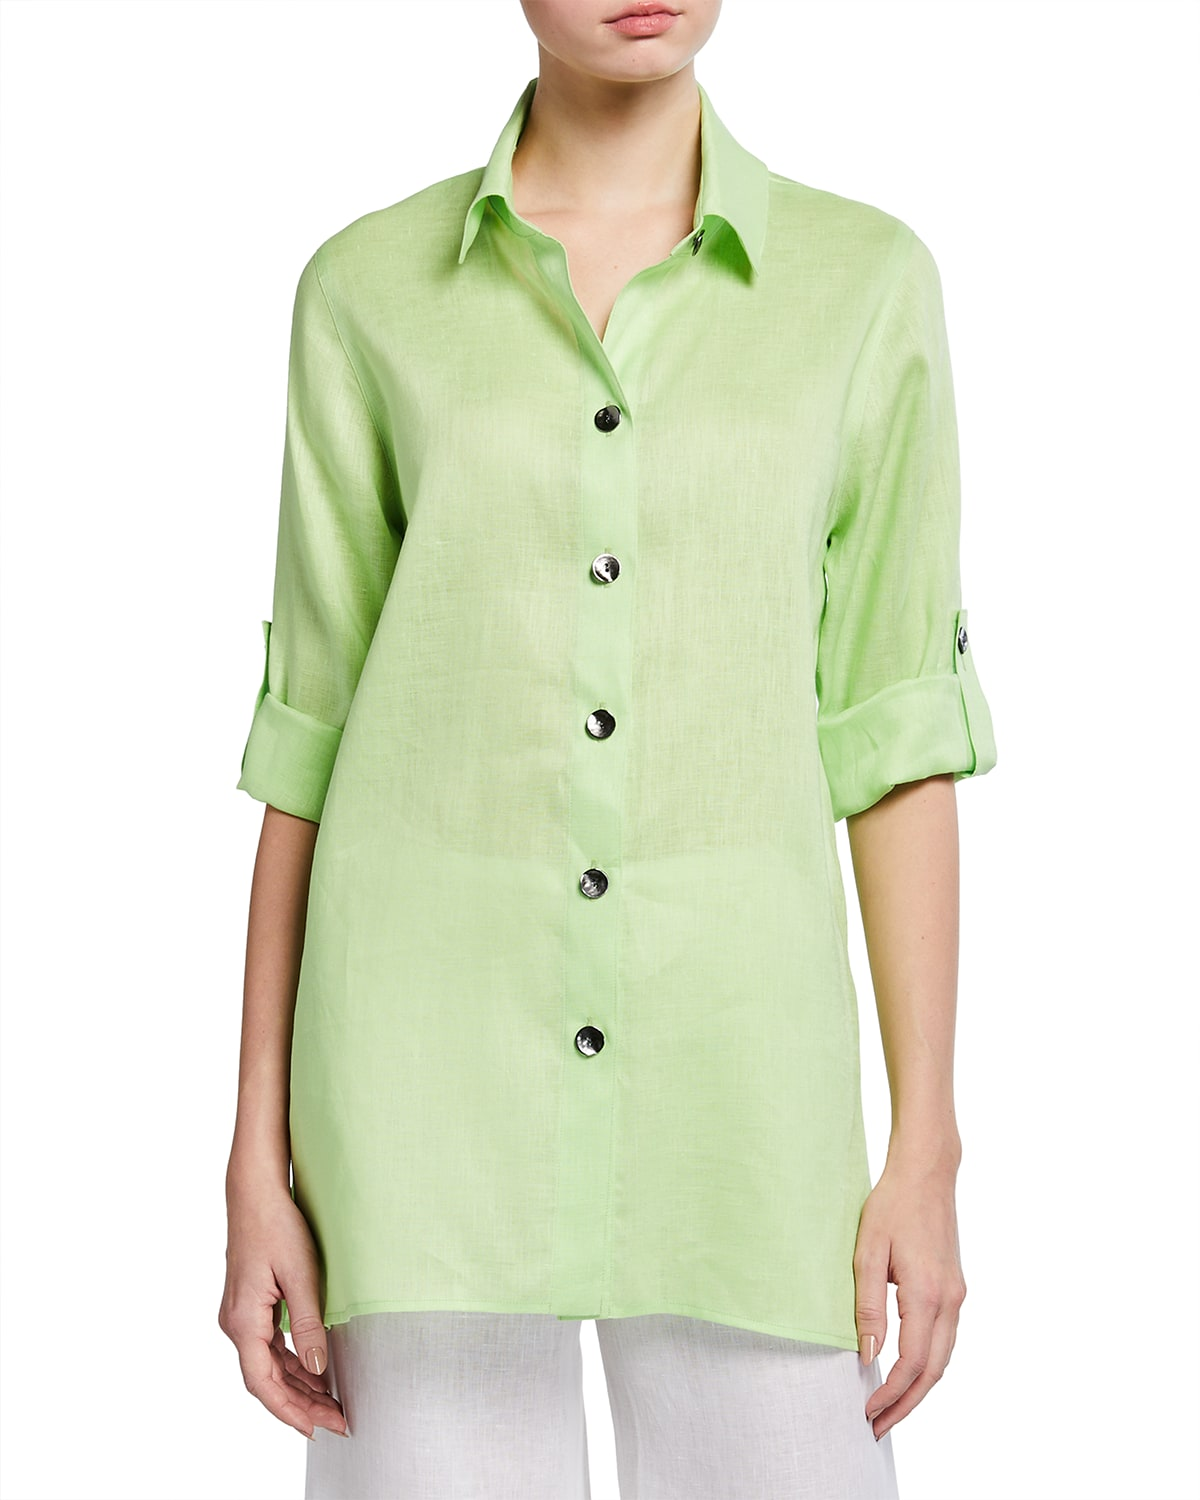 Plus Size Collared Tissue Linen Tab Shirt